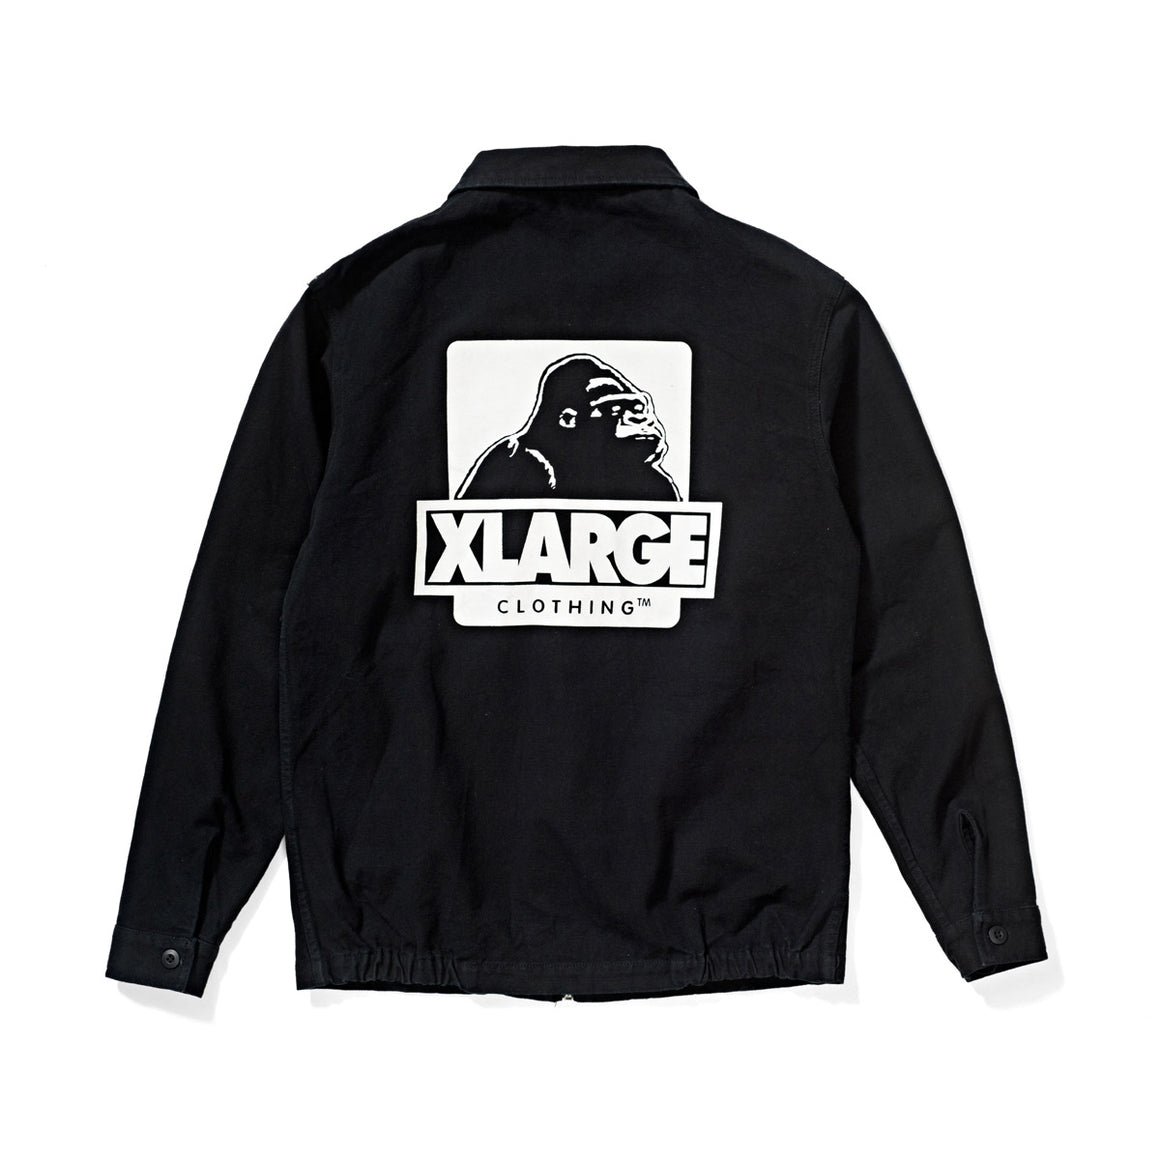 Sports Jacket, Apparel  - XLarge Brand